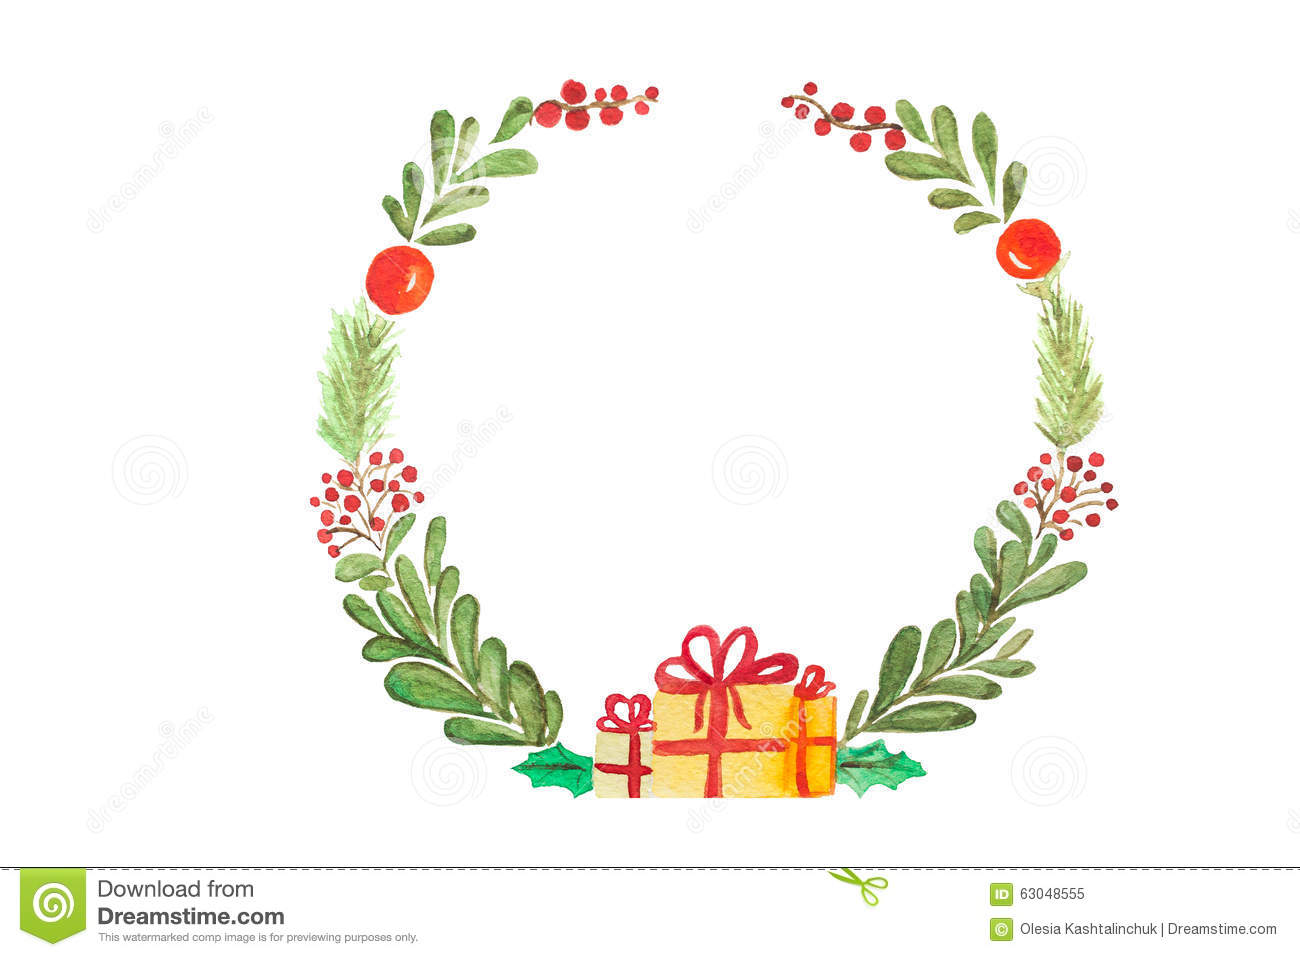 Hand drawn watercolor raster illustration christmas wreath on hand drawn watercolor raster illustration christmas wreath on white perfect for invitations greeting cards quotes bl kristyandbryce Image collections